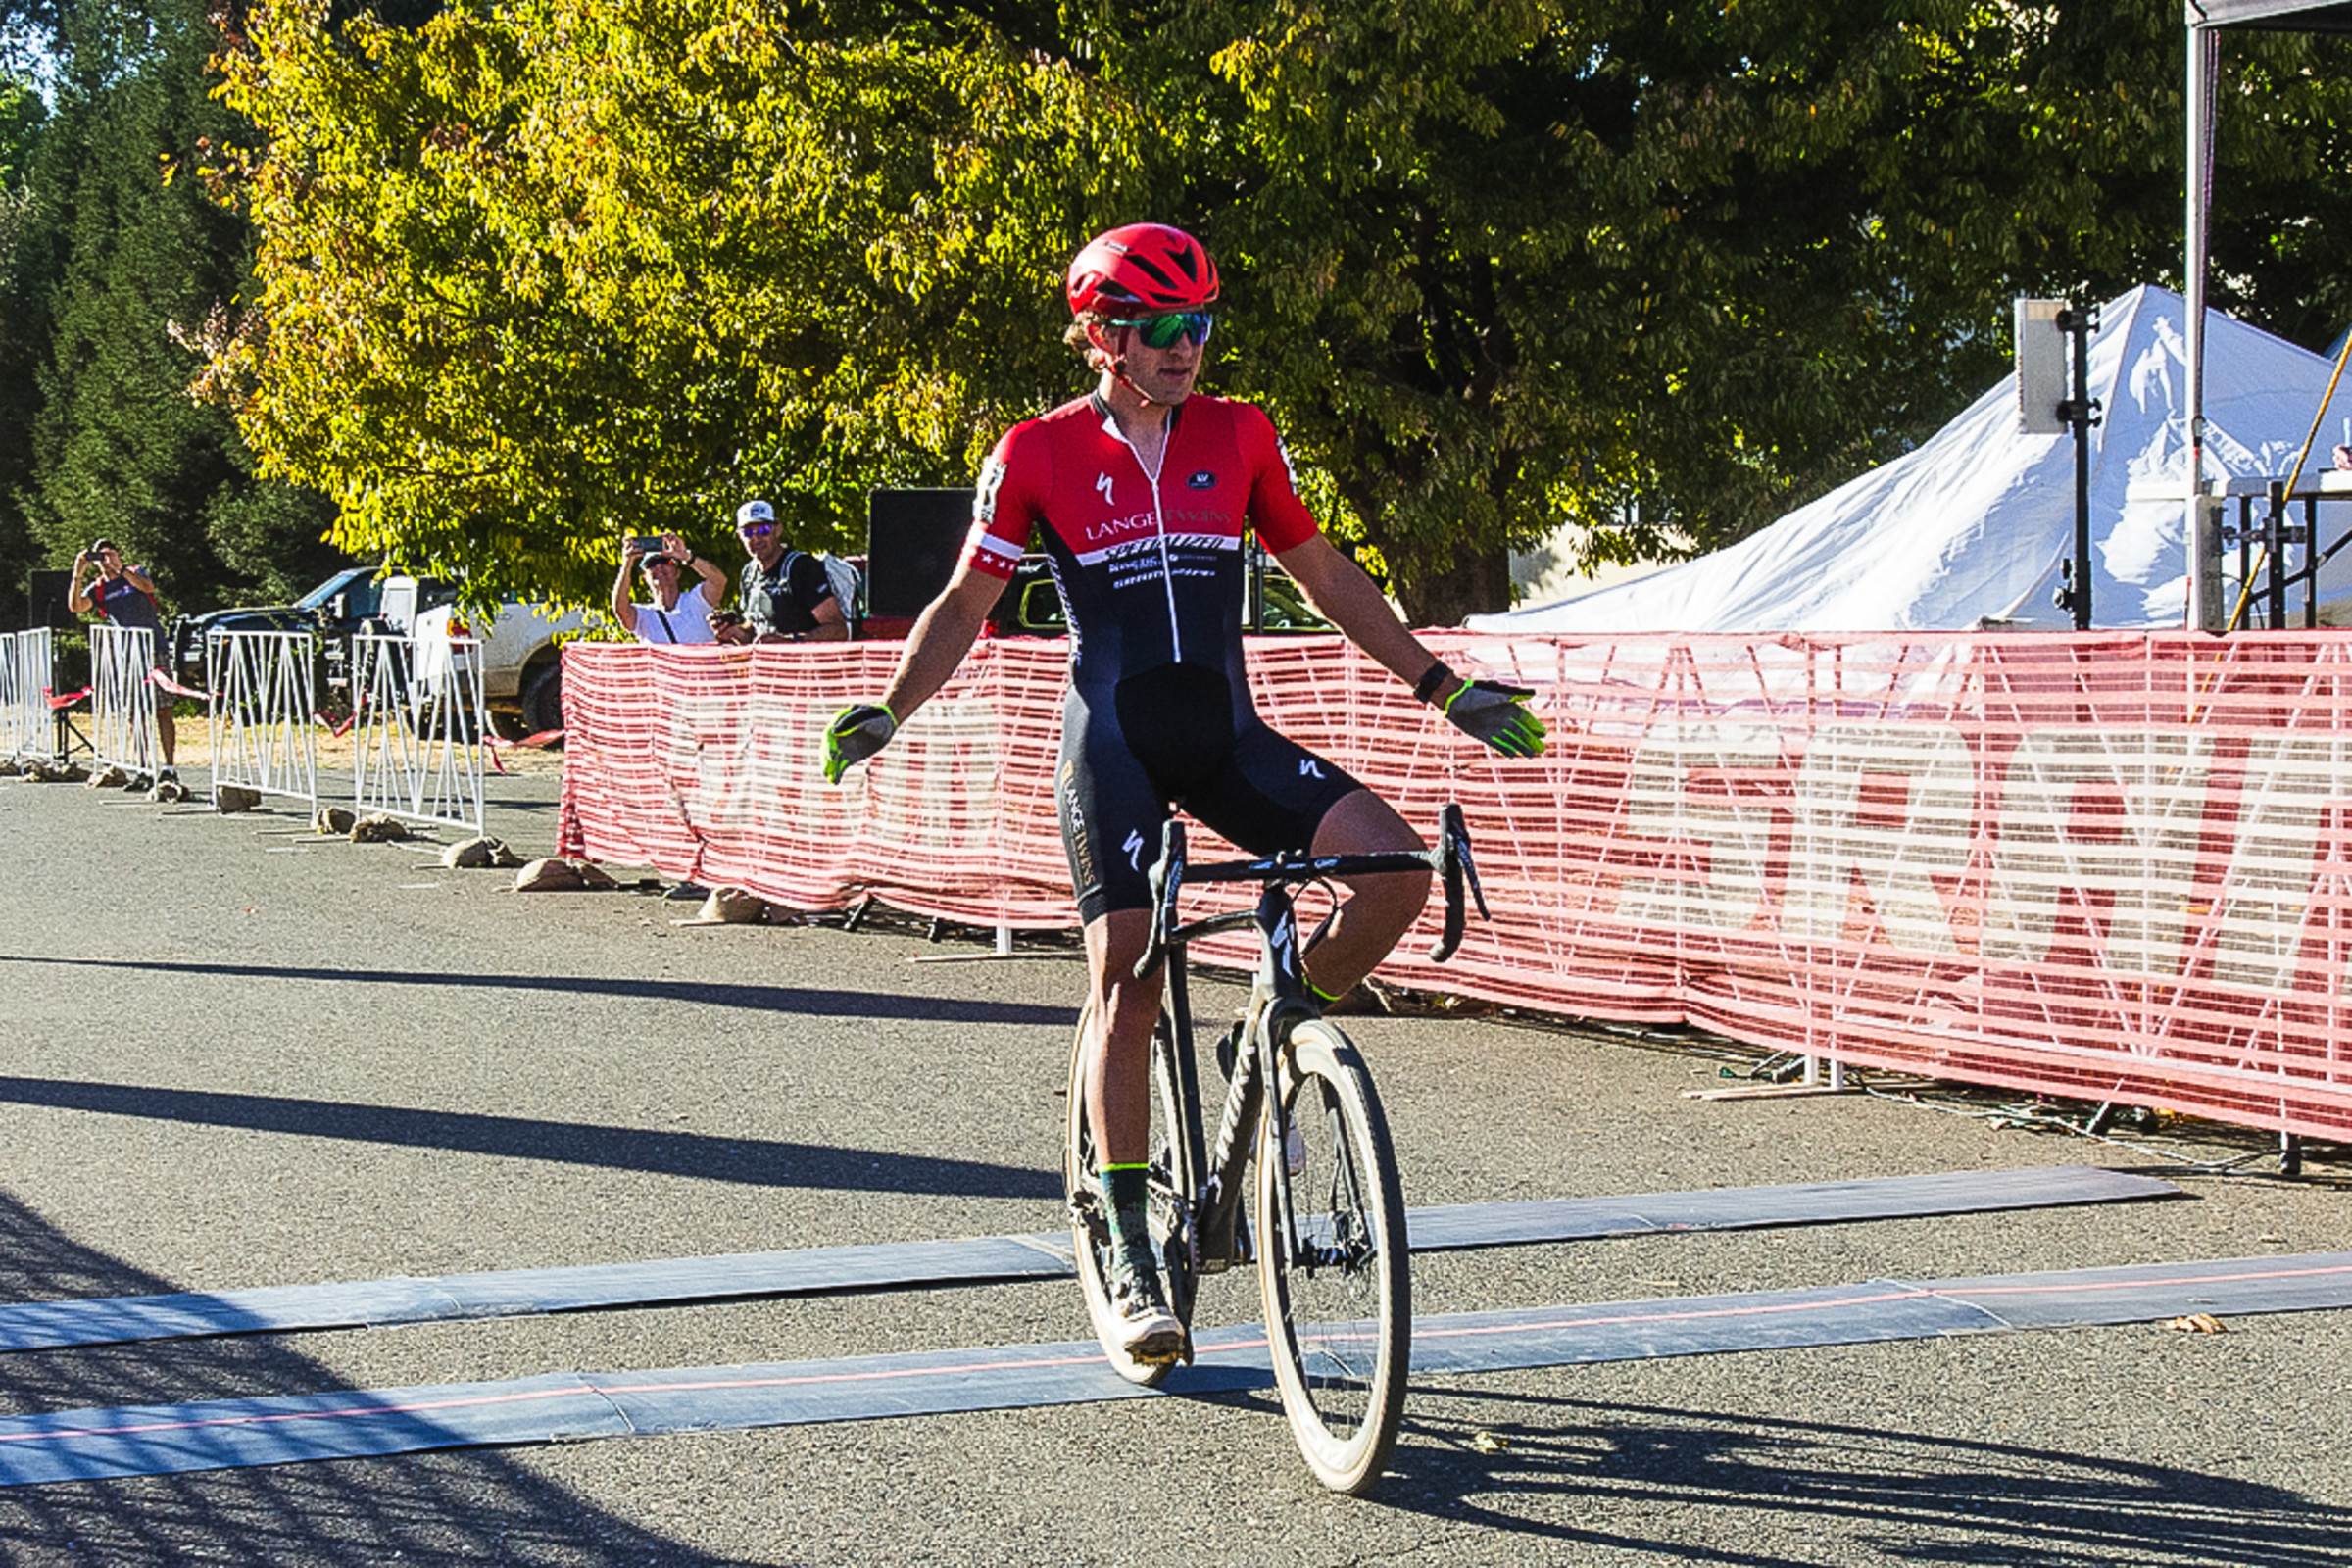 Runnels, Kaiser Win 2018 West Sac CX Grand Prix Day 2 - Report